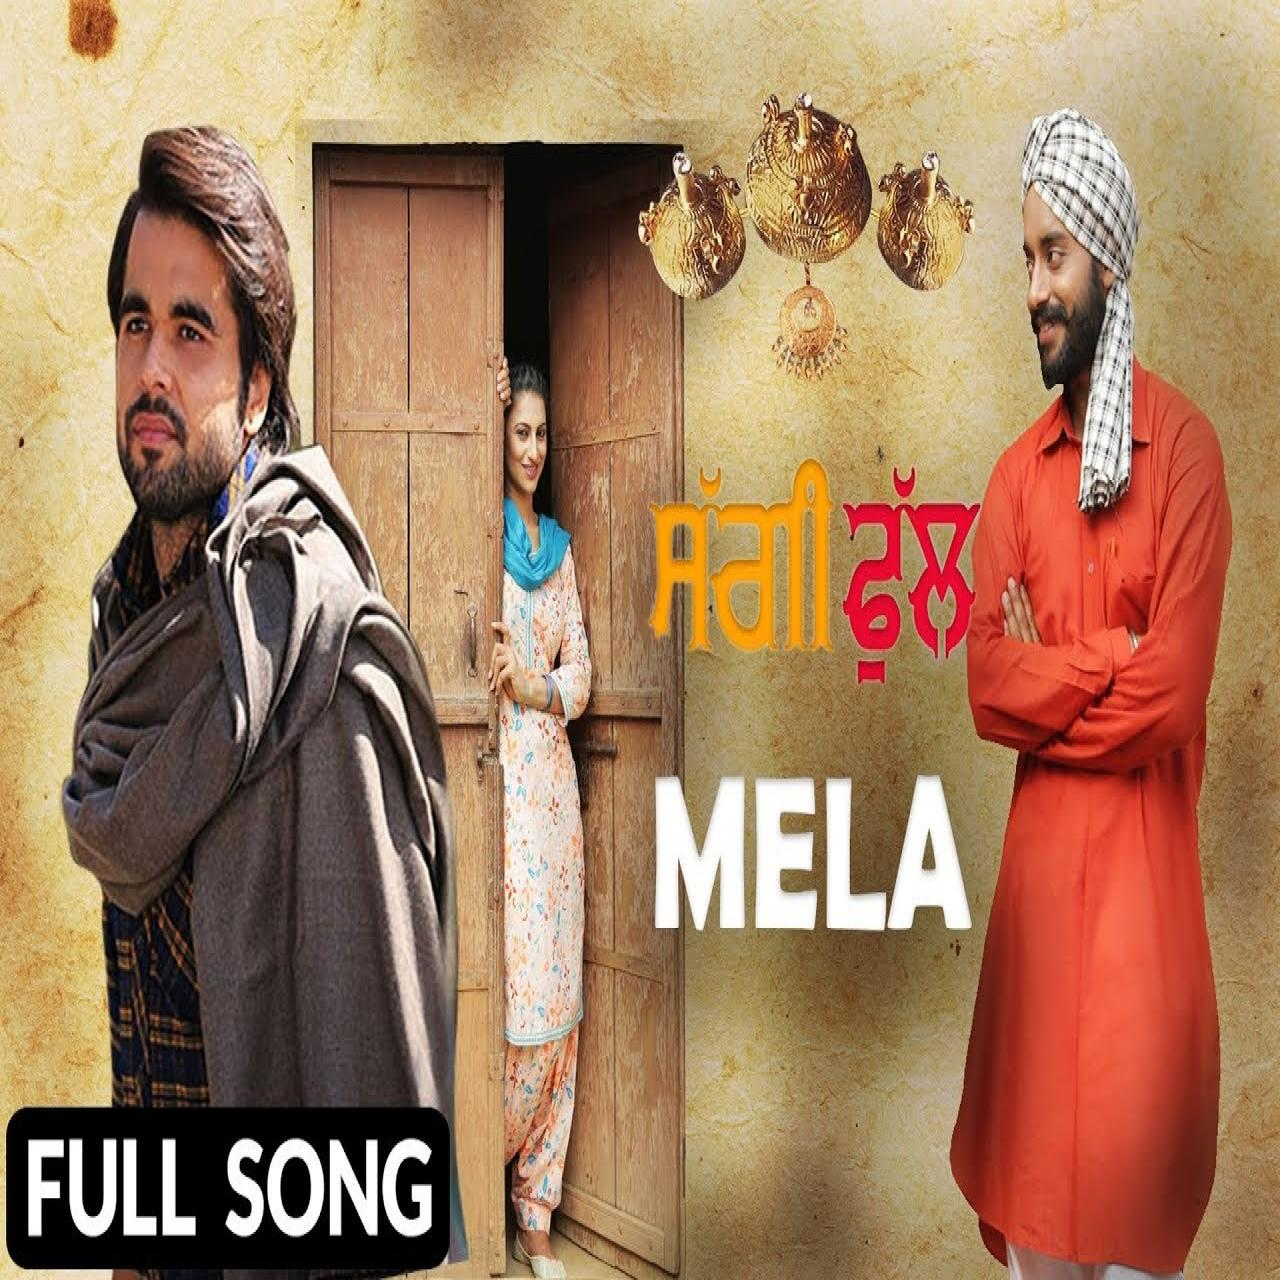 Mela (Saggi Phull)  Ninja new song